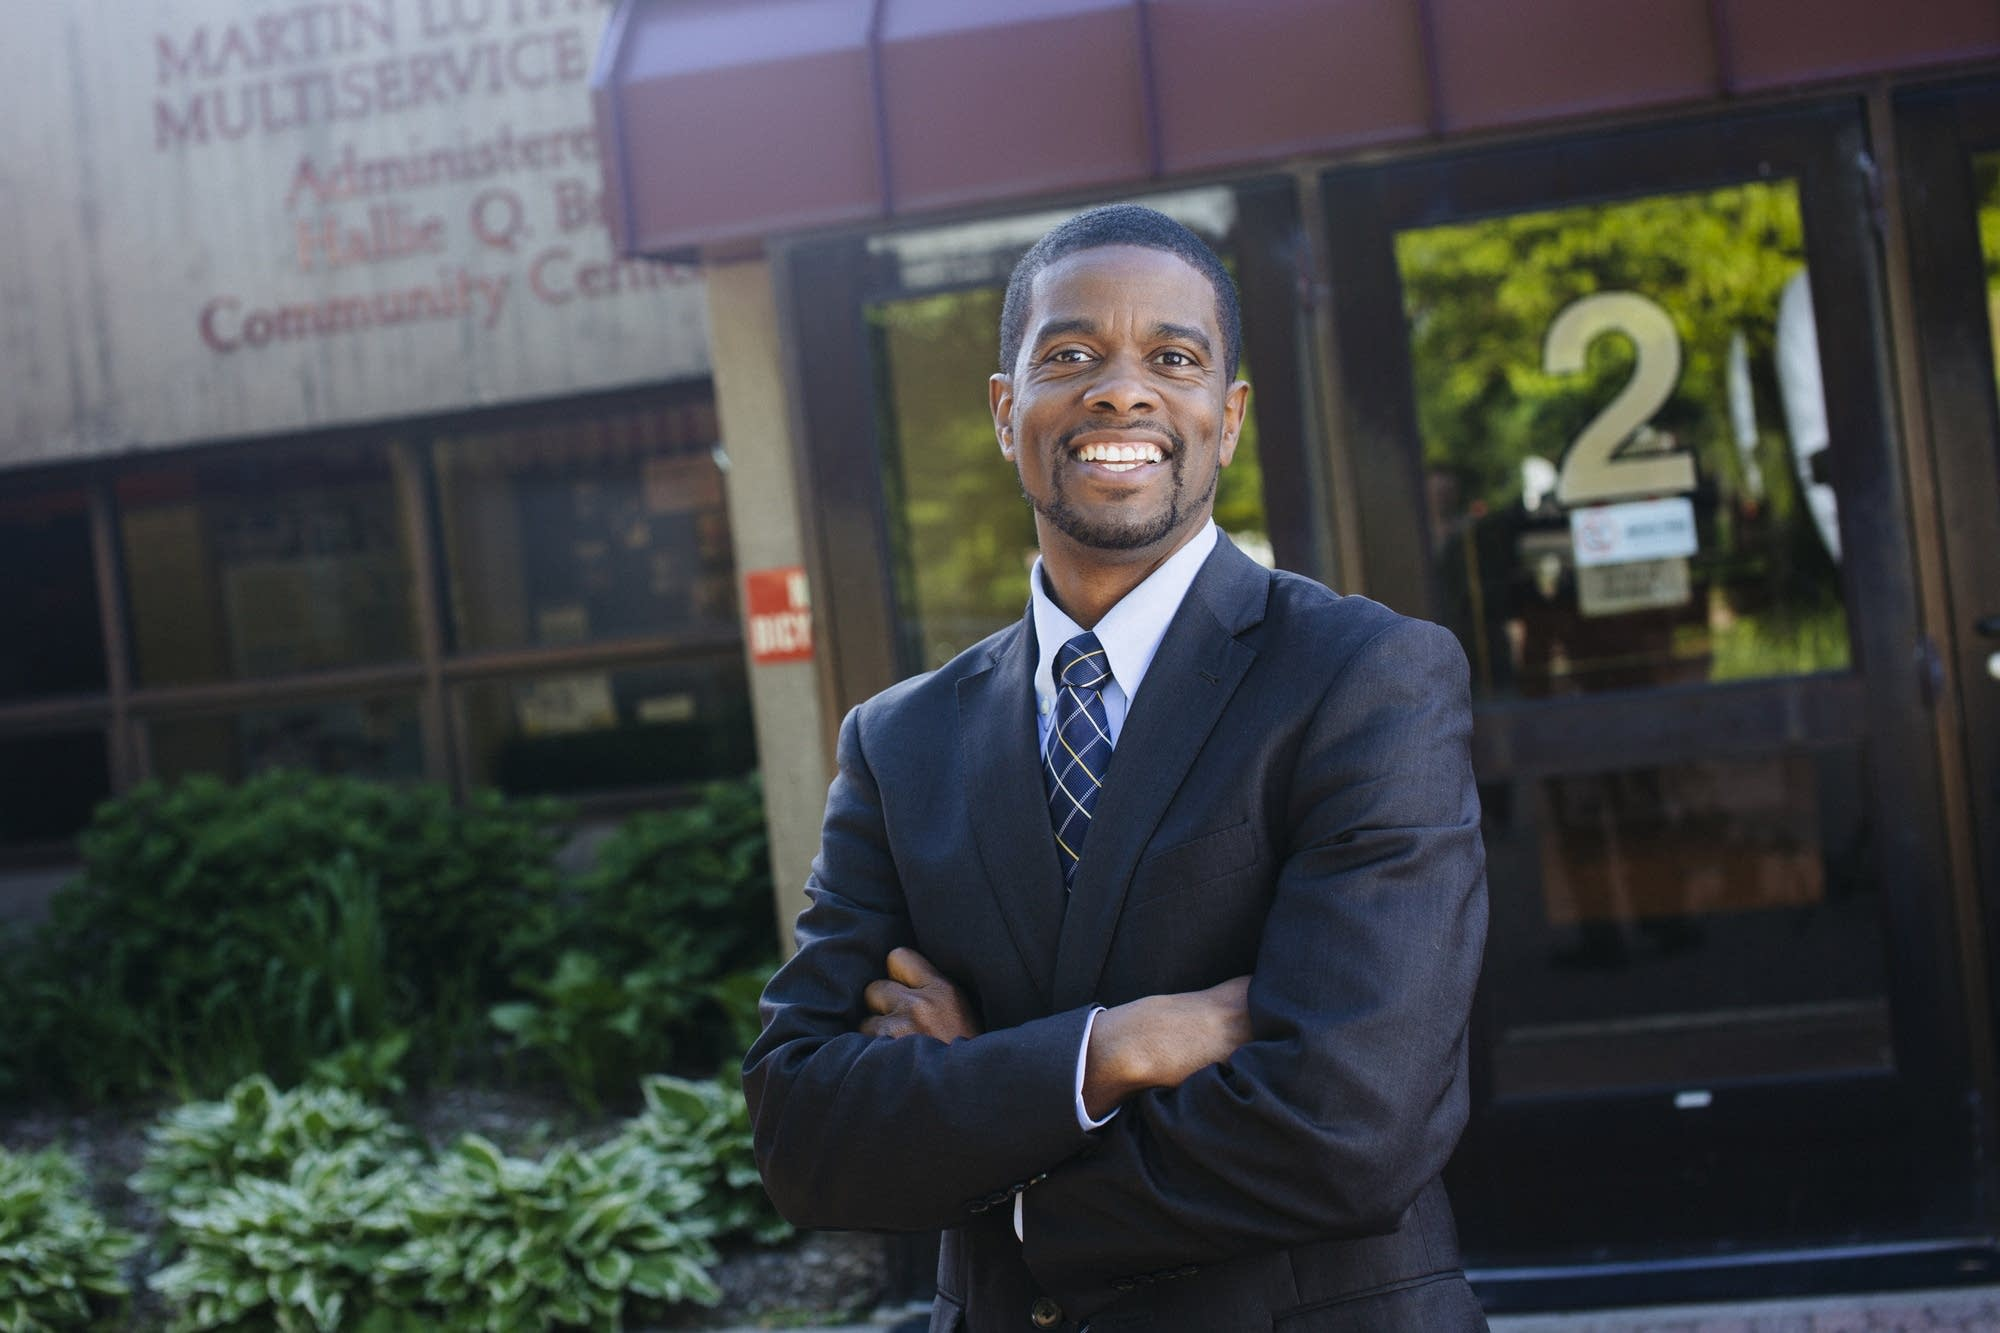 St. Paul mayoral candidate Melvin Carter